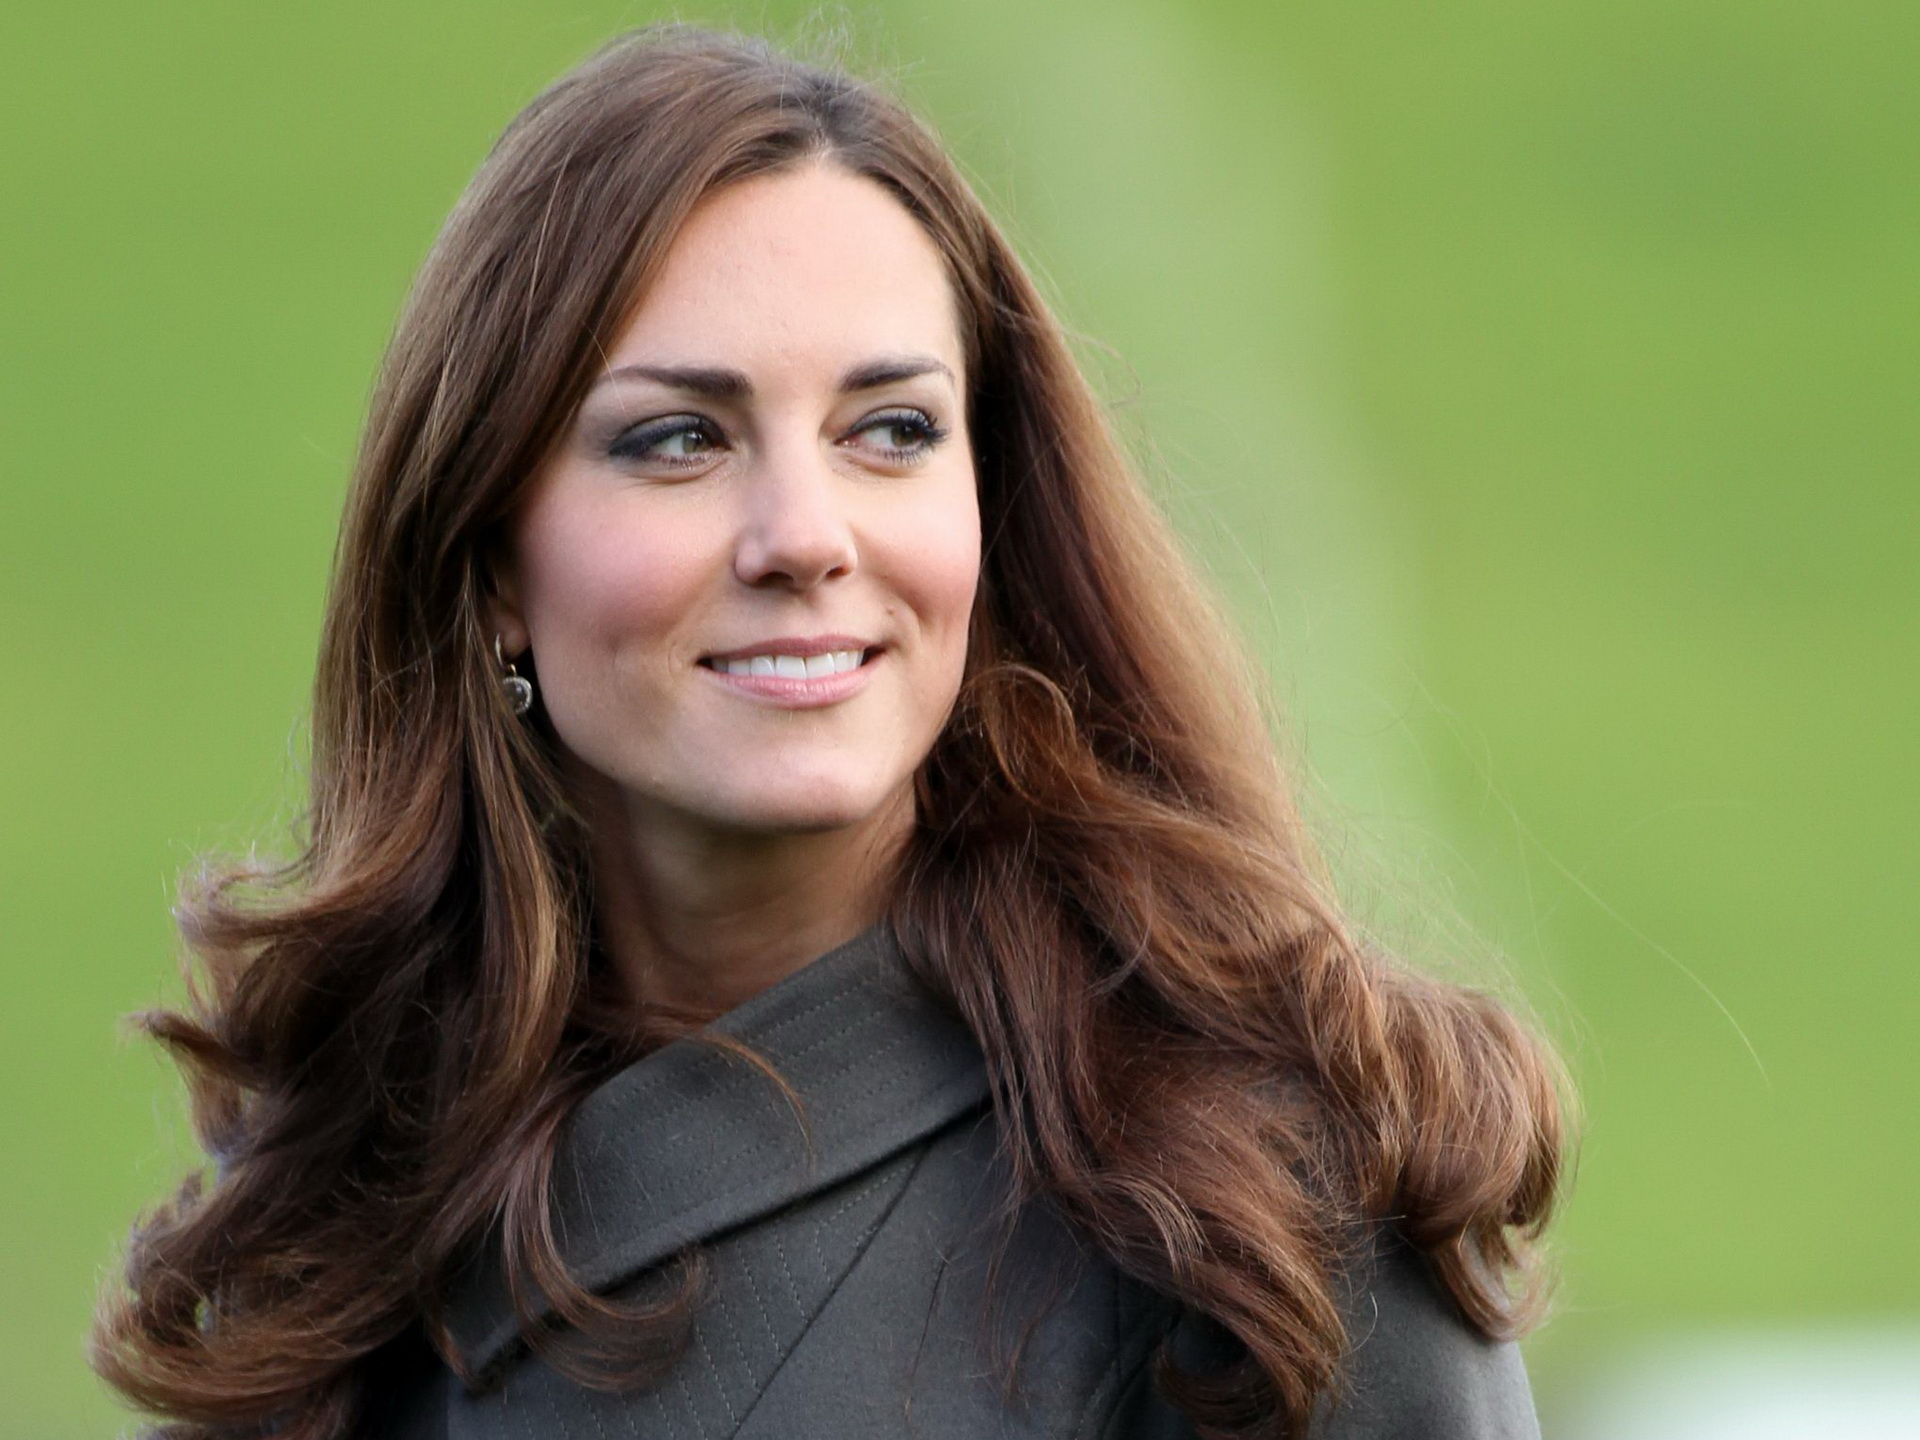 kate middleton computer wallpaper 60849